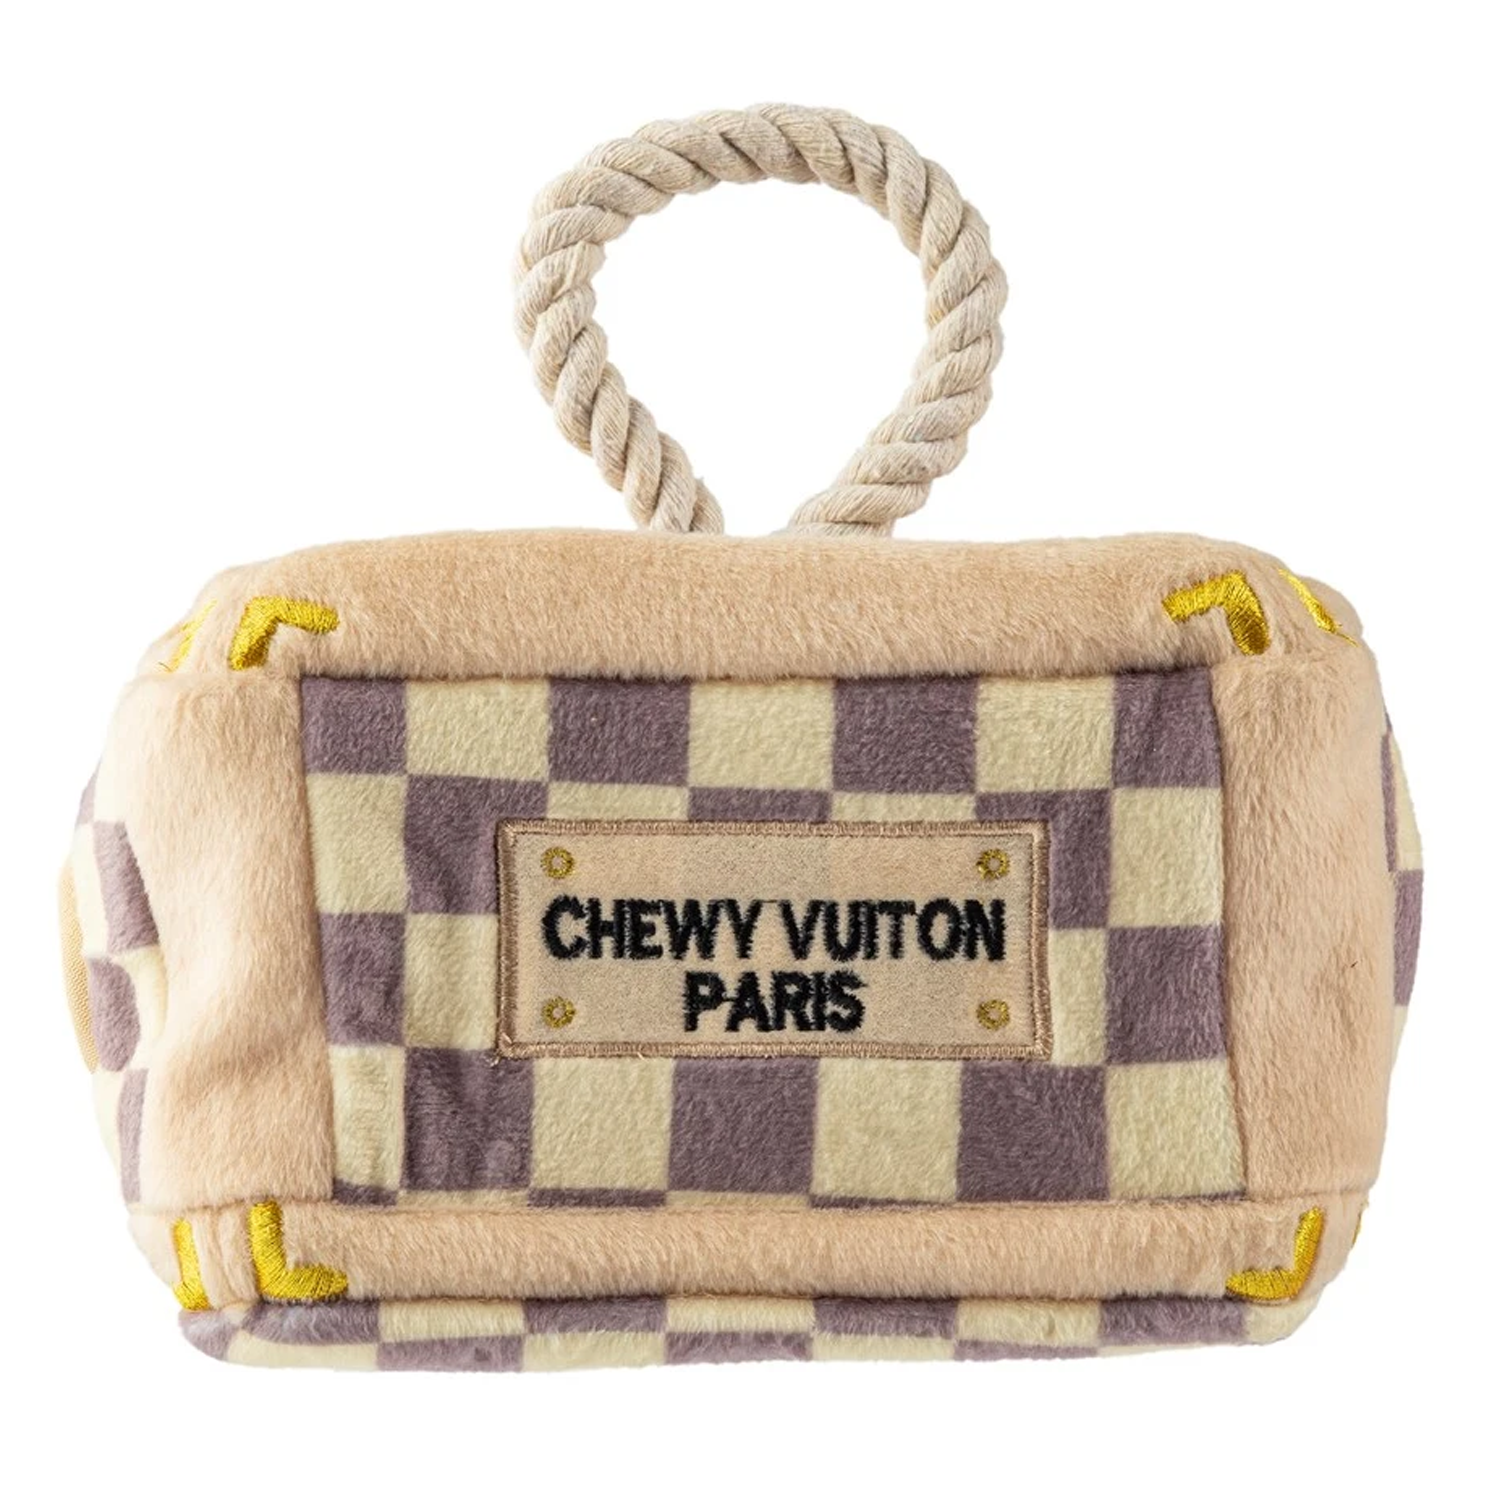 Checker Chewy Vuiton Trunk Interactive Dog Toy